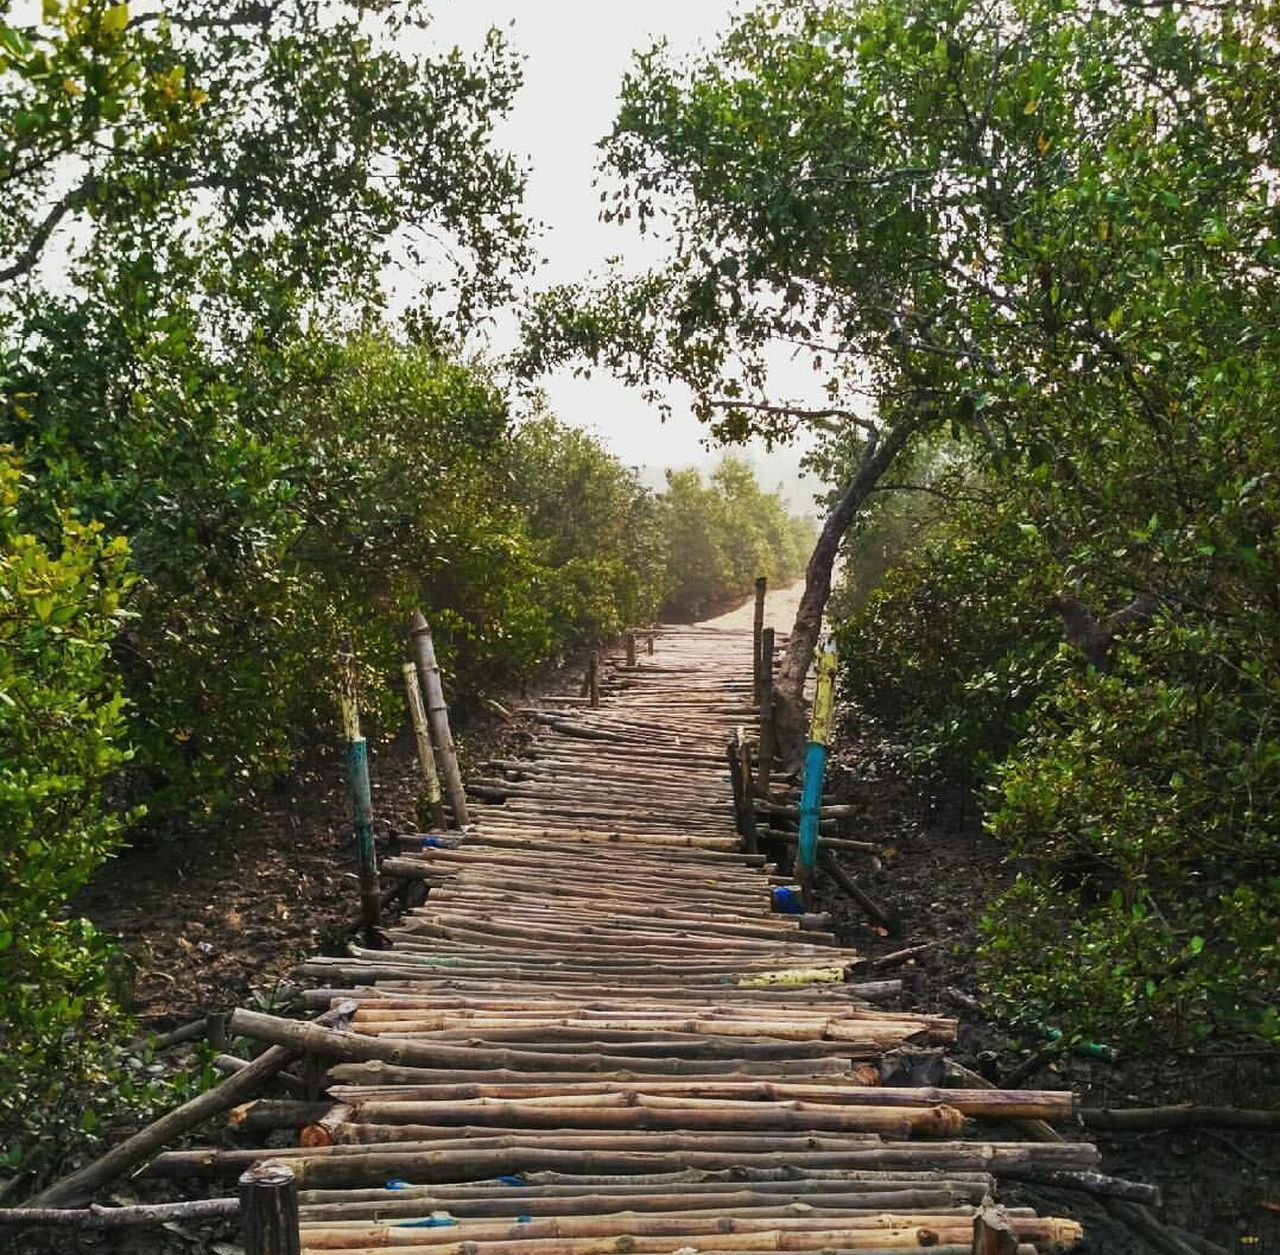 Wooden bridge through the forest Beautiful Beauty In Nature Bridge Brown Day Daylight EyeEm Nature Lover Forest Green Greenery India Landscape Life Nature No People Outdoors Pattern Plant Serenity Sky The Way Forward Trail Tranquility Tree Wooden EyeEmNewHere